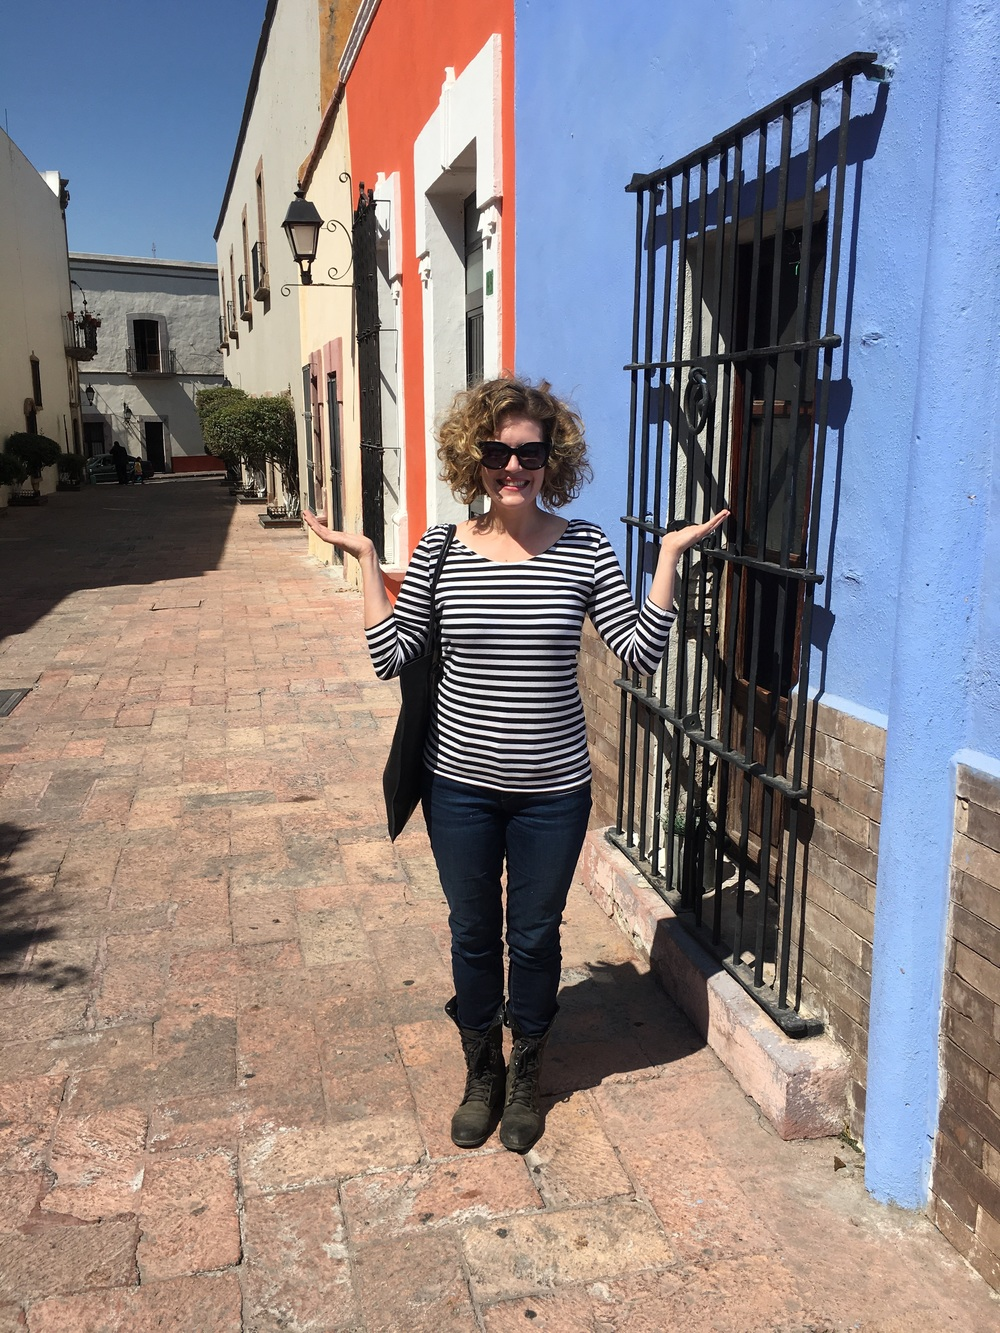 Outside Cafe Breton in Queretaro - showered!